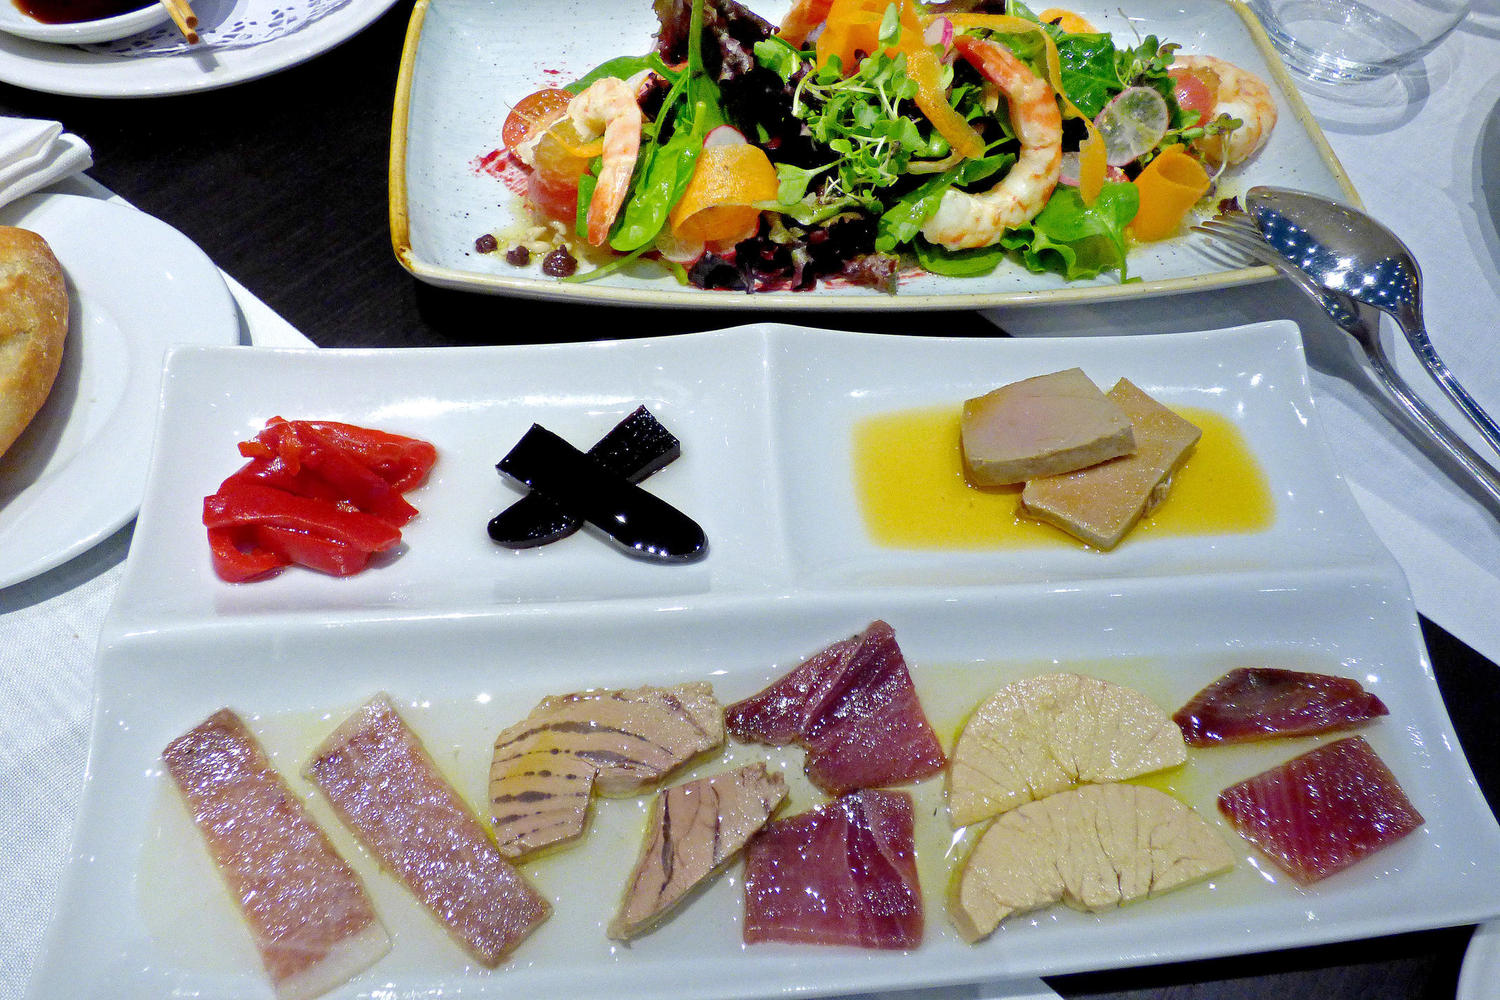 Red tuna tasting at El Campero restaurant in Barbate